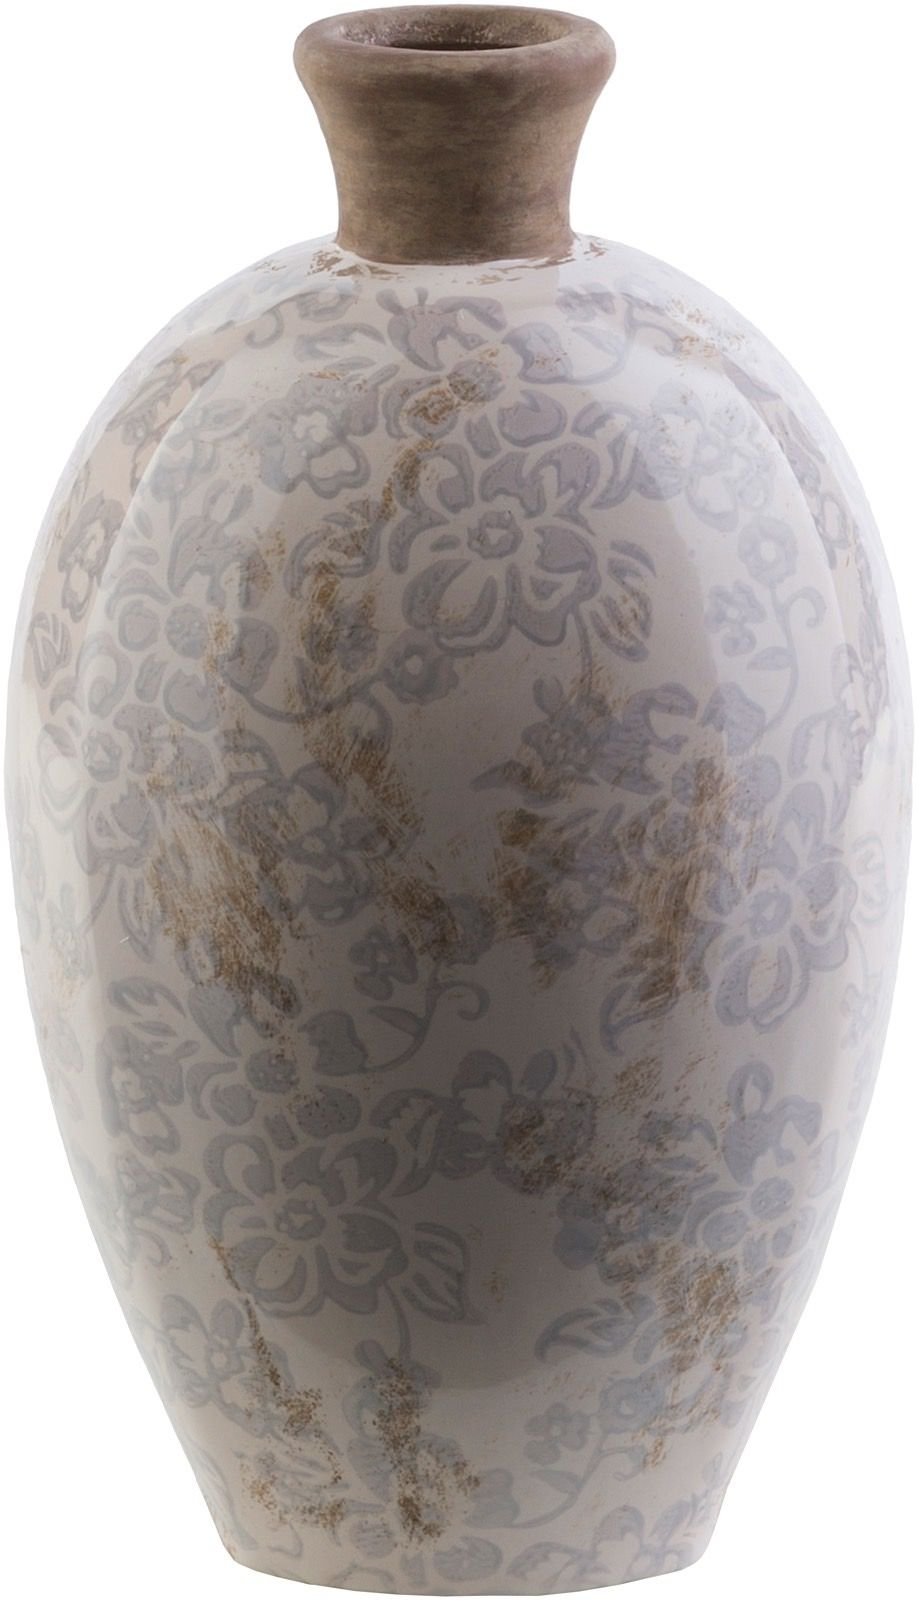 surya leclair country & floral vases